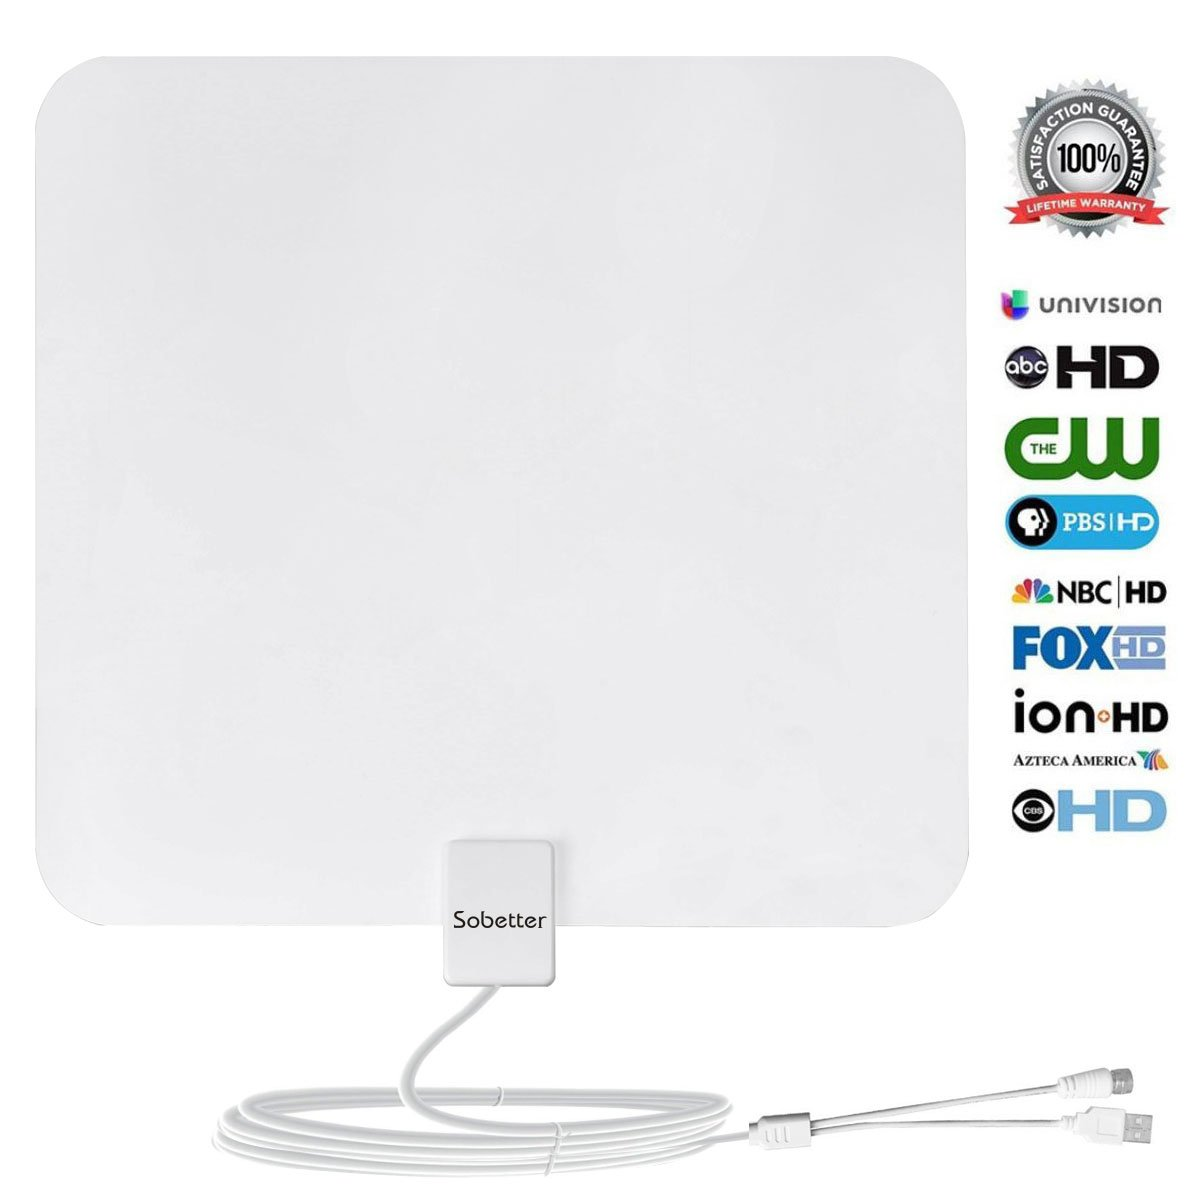 [2018 Upgraded] Amplified Digital HDTV Antenna 50Miles Reception Range with Newest Built-in Amplifier,USB Power Supply,13.2ft Coax Cable,12 Months Warranty(Supports 1080p,4K,